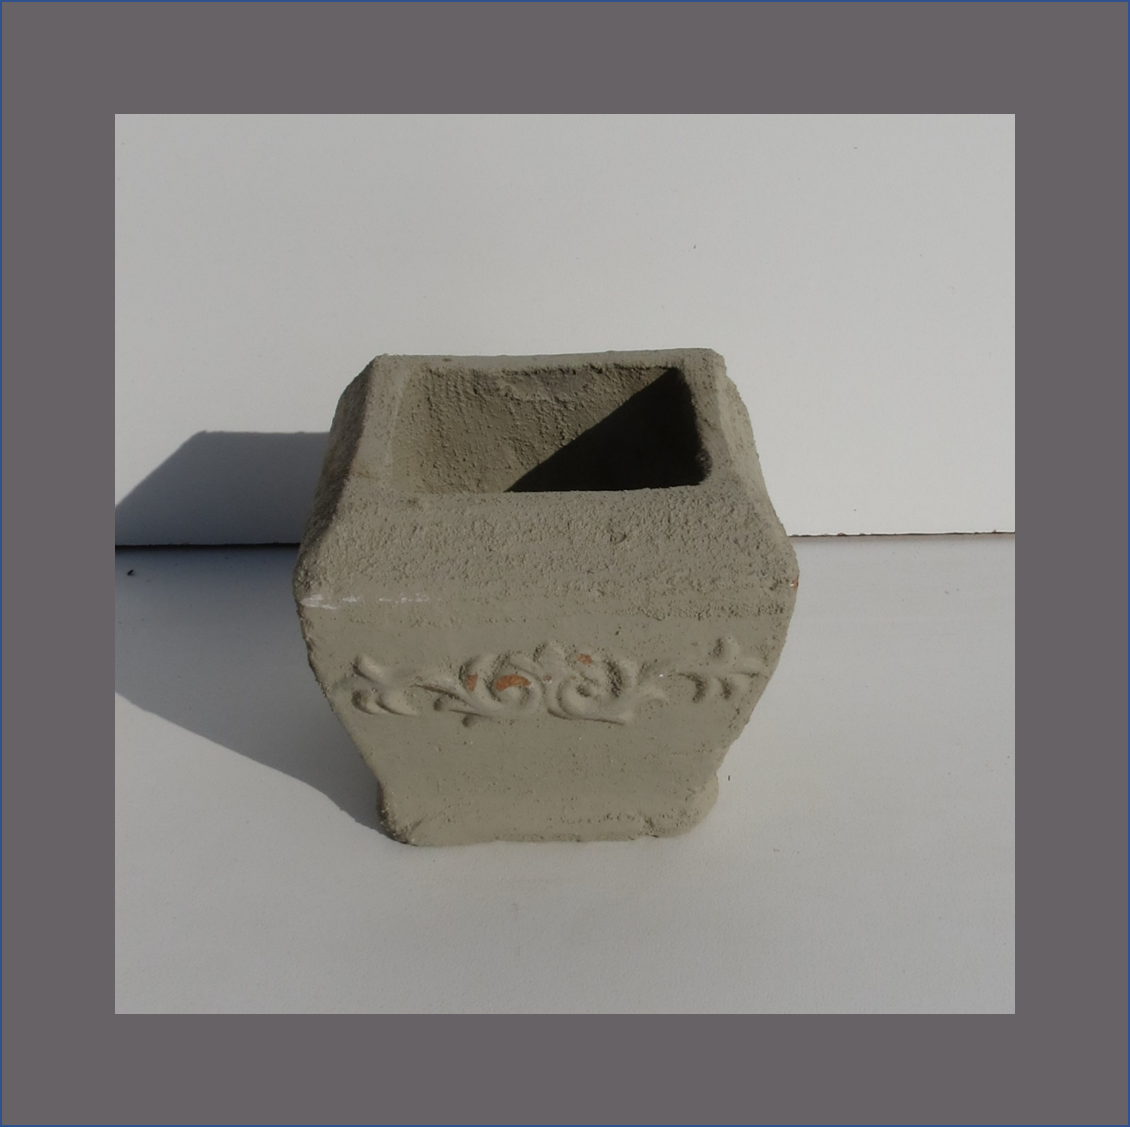 concrete-flower-motive-vase